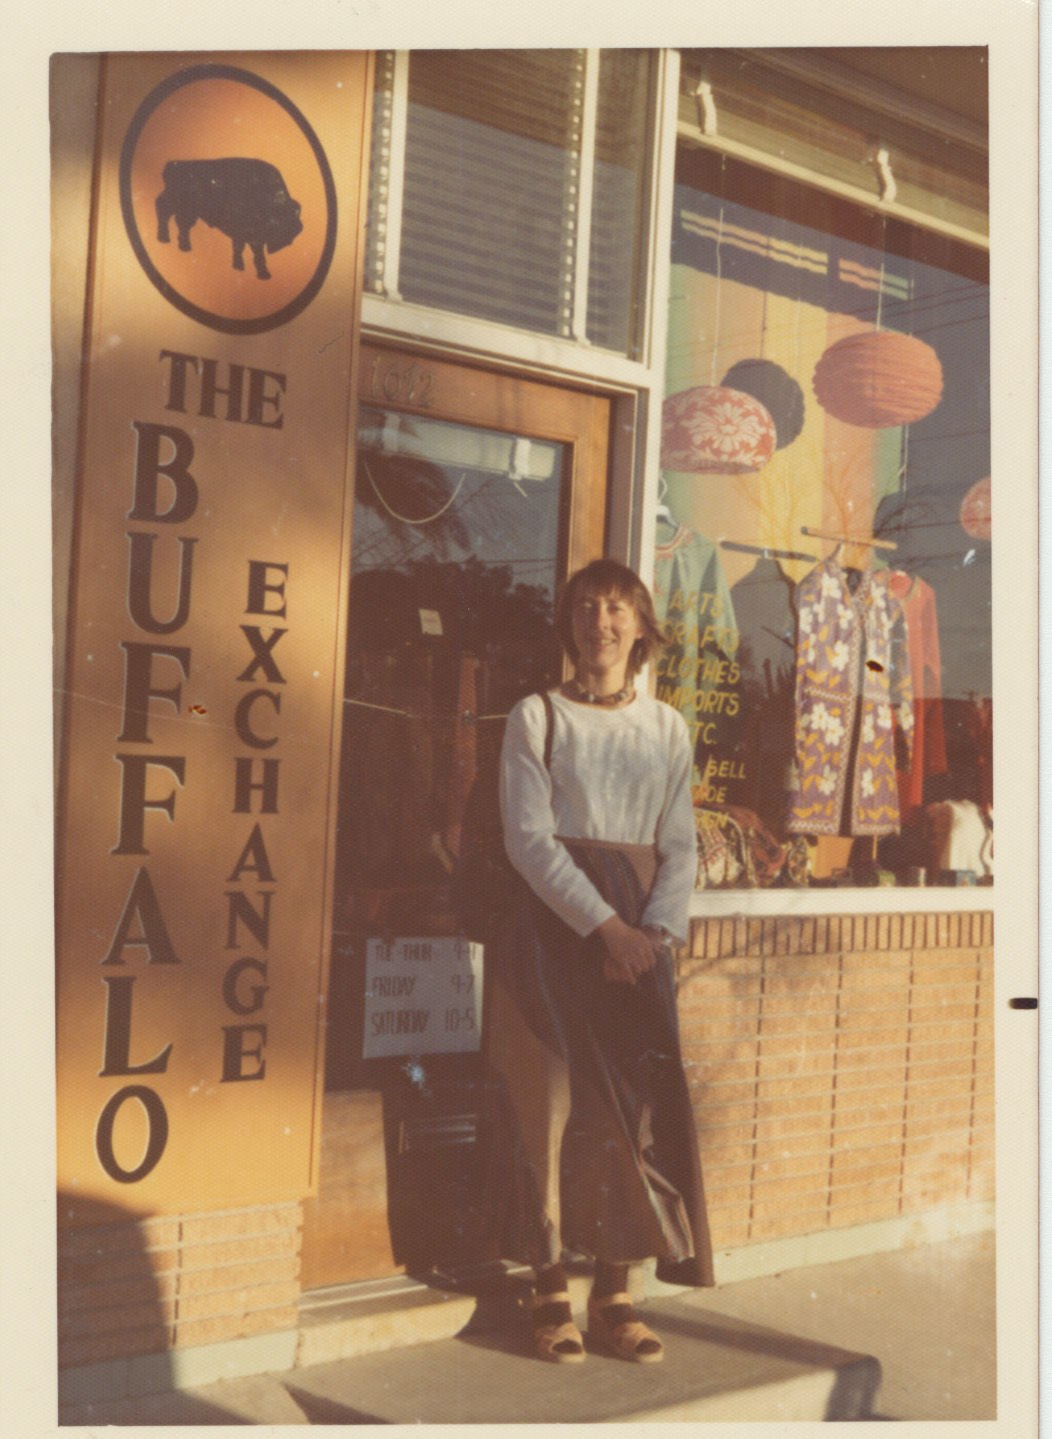 Buffalo Exchange: Family owned for nearly half a century | Tucson Local Media